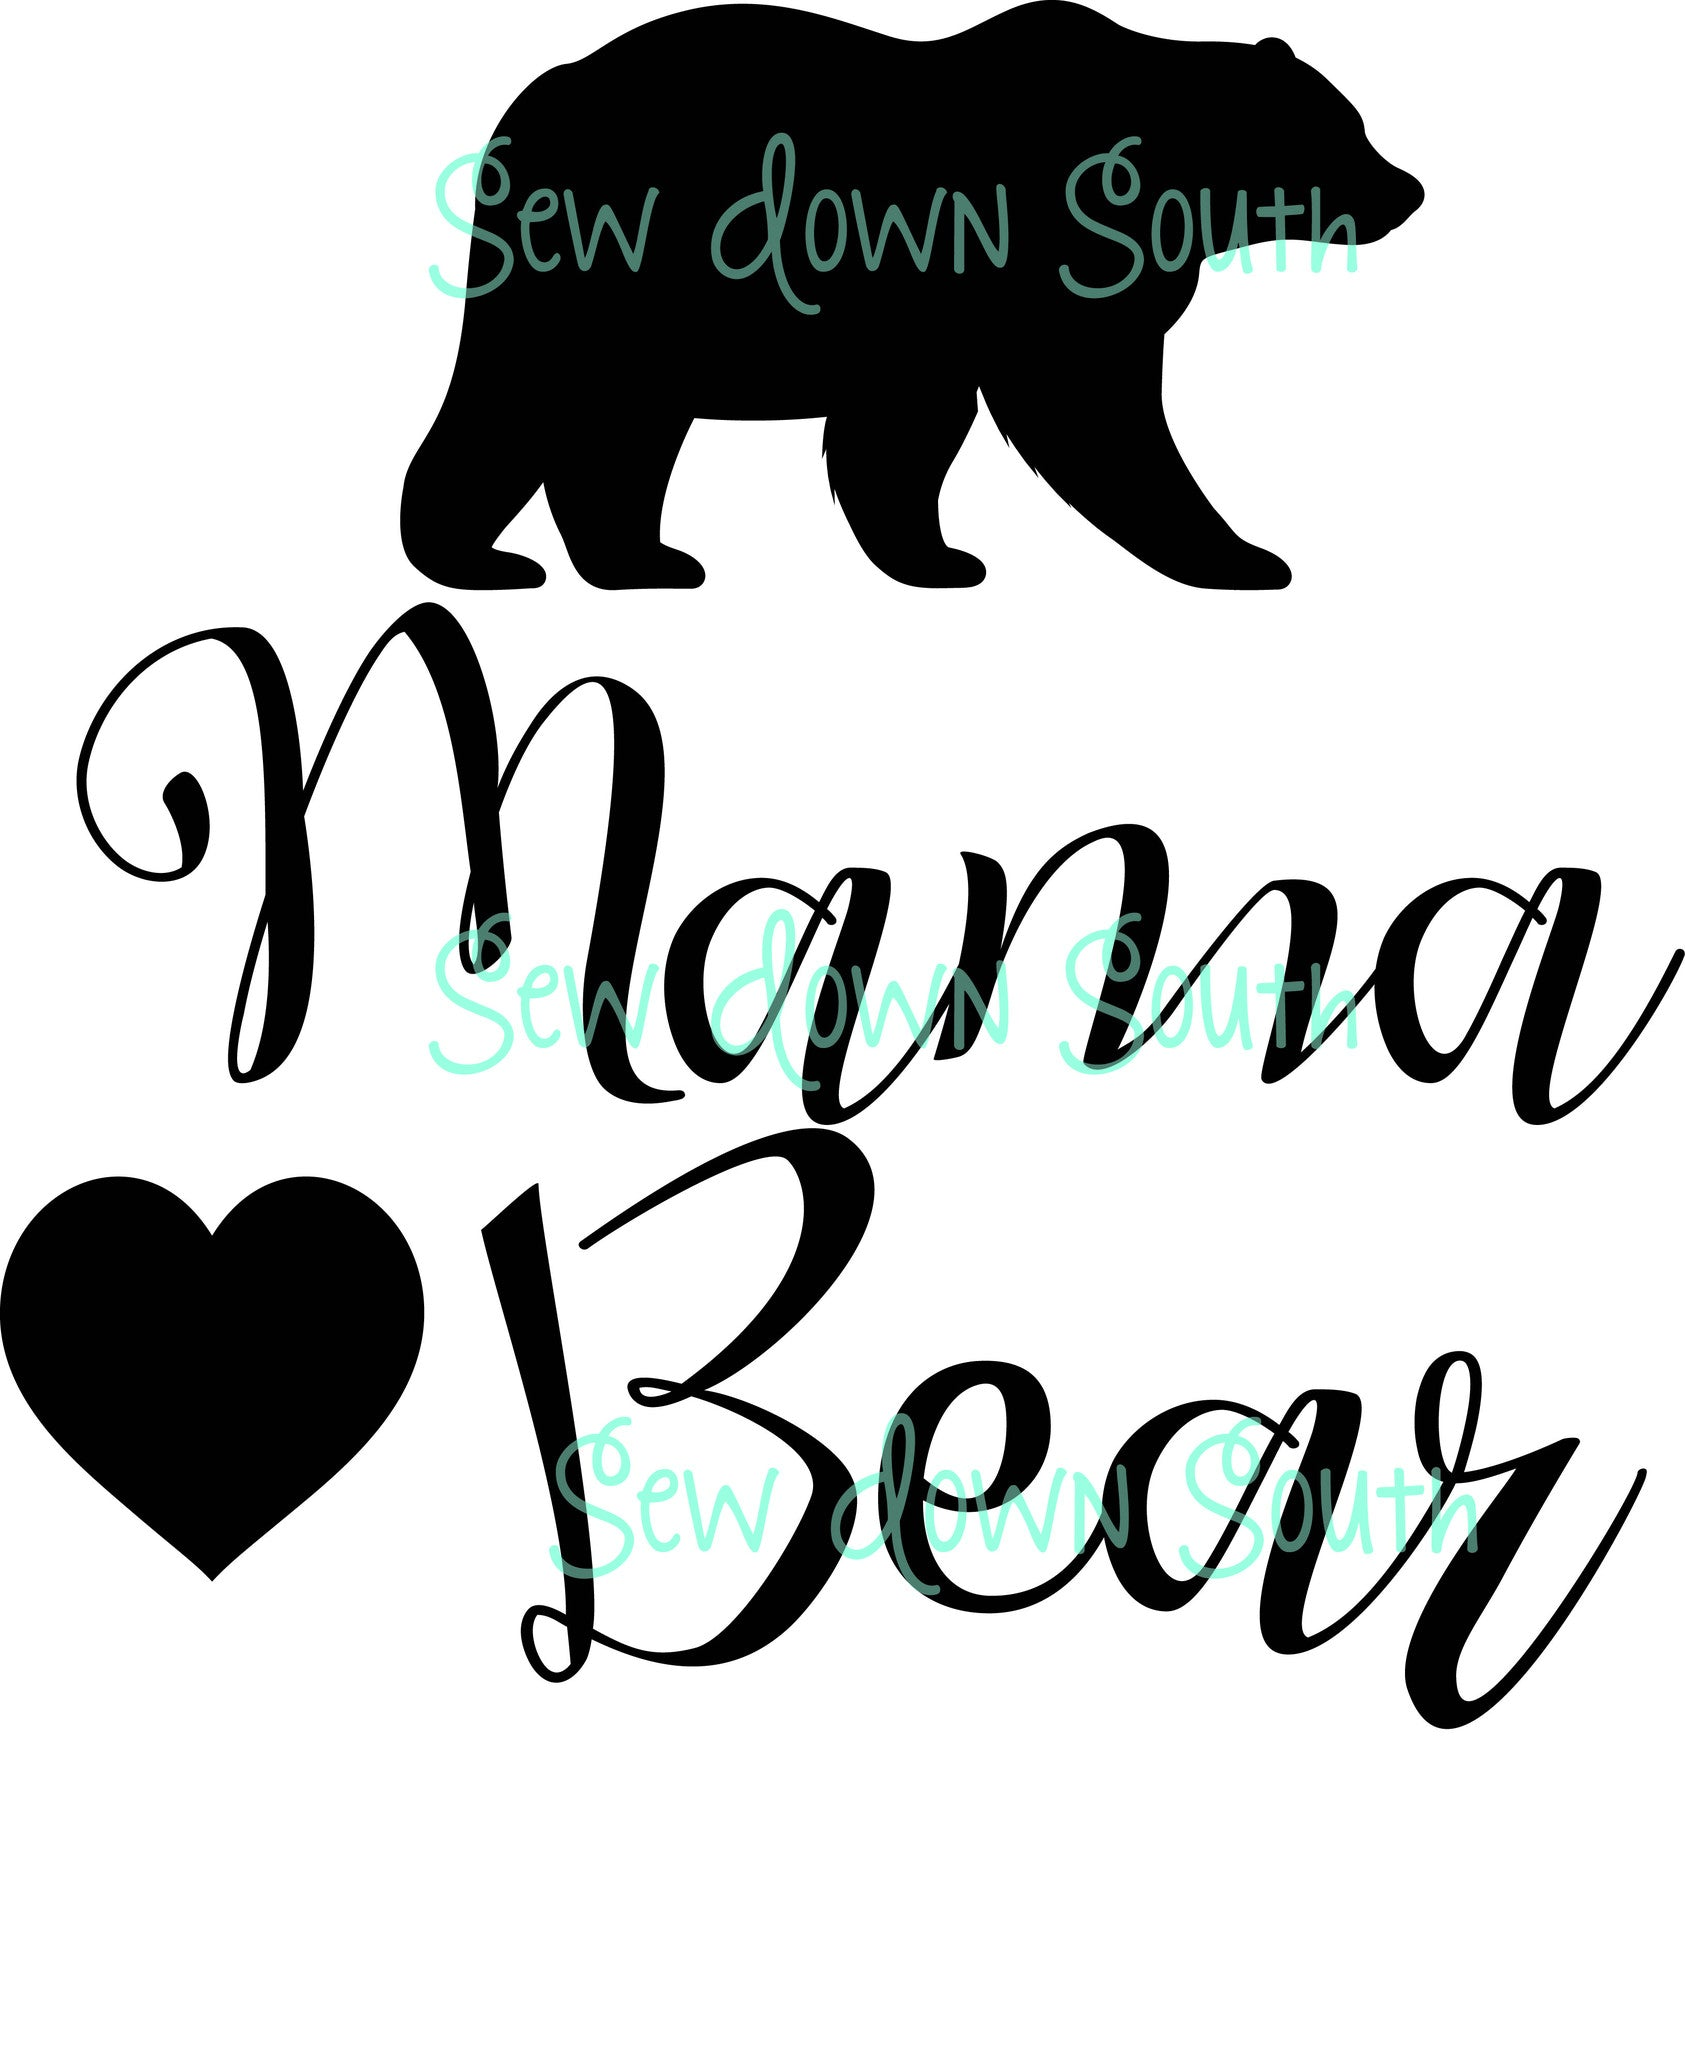 mama bear and family svg cut files sew down south